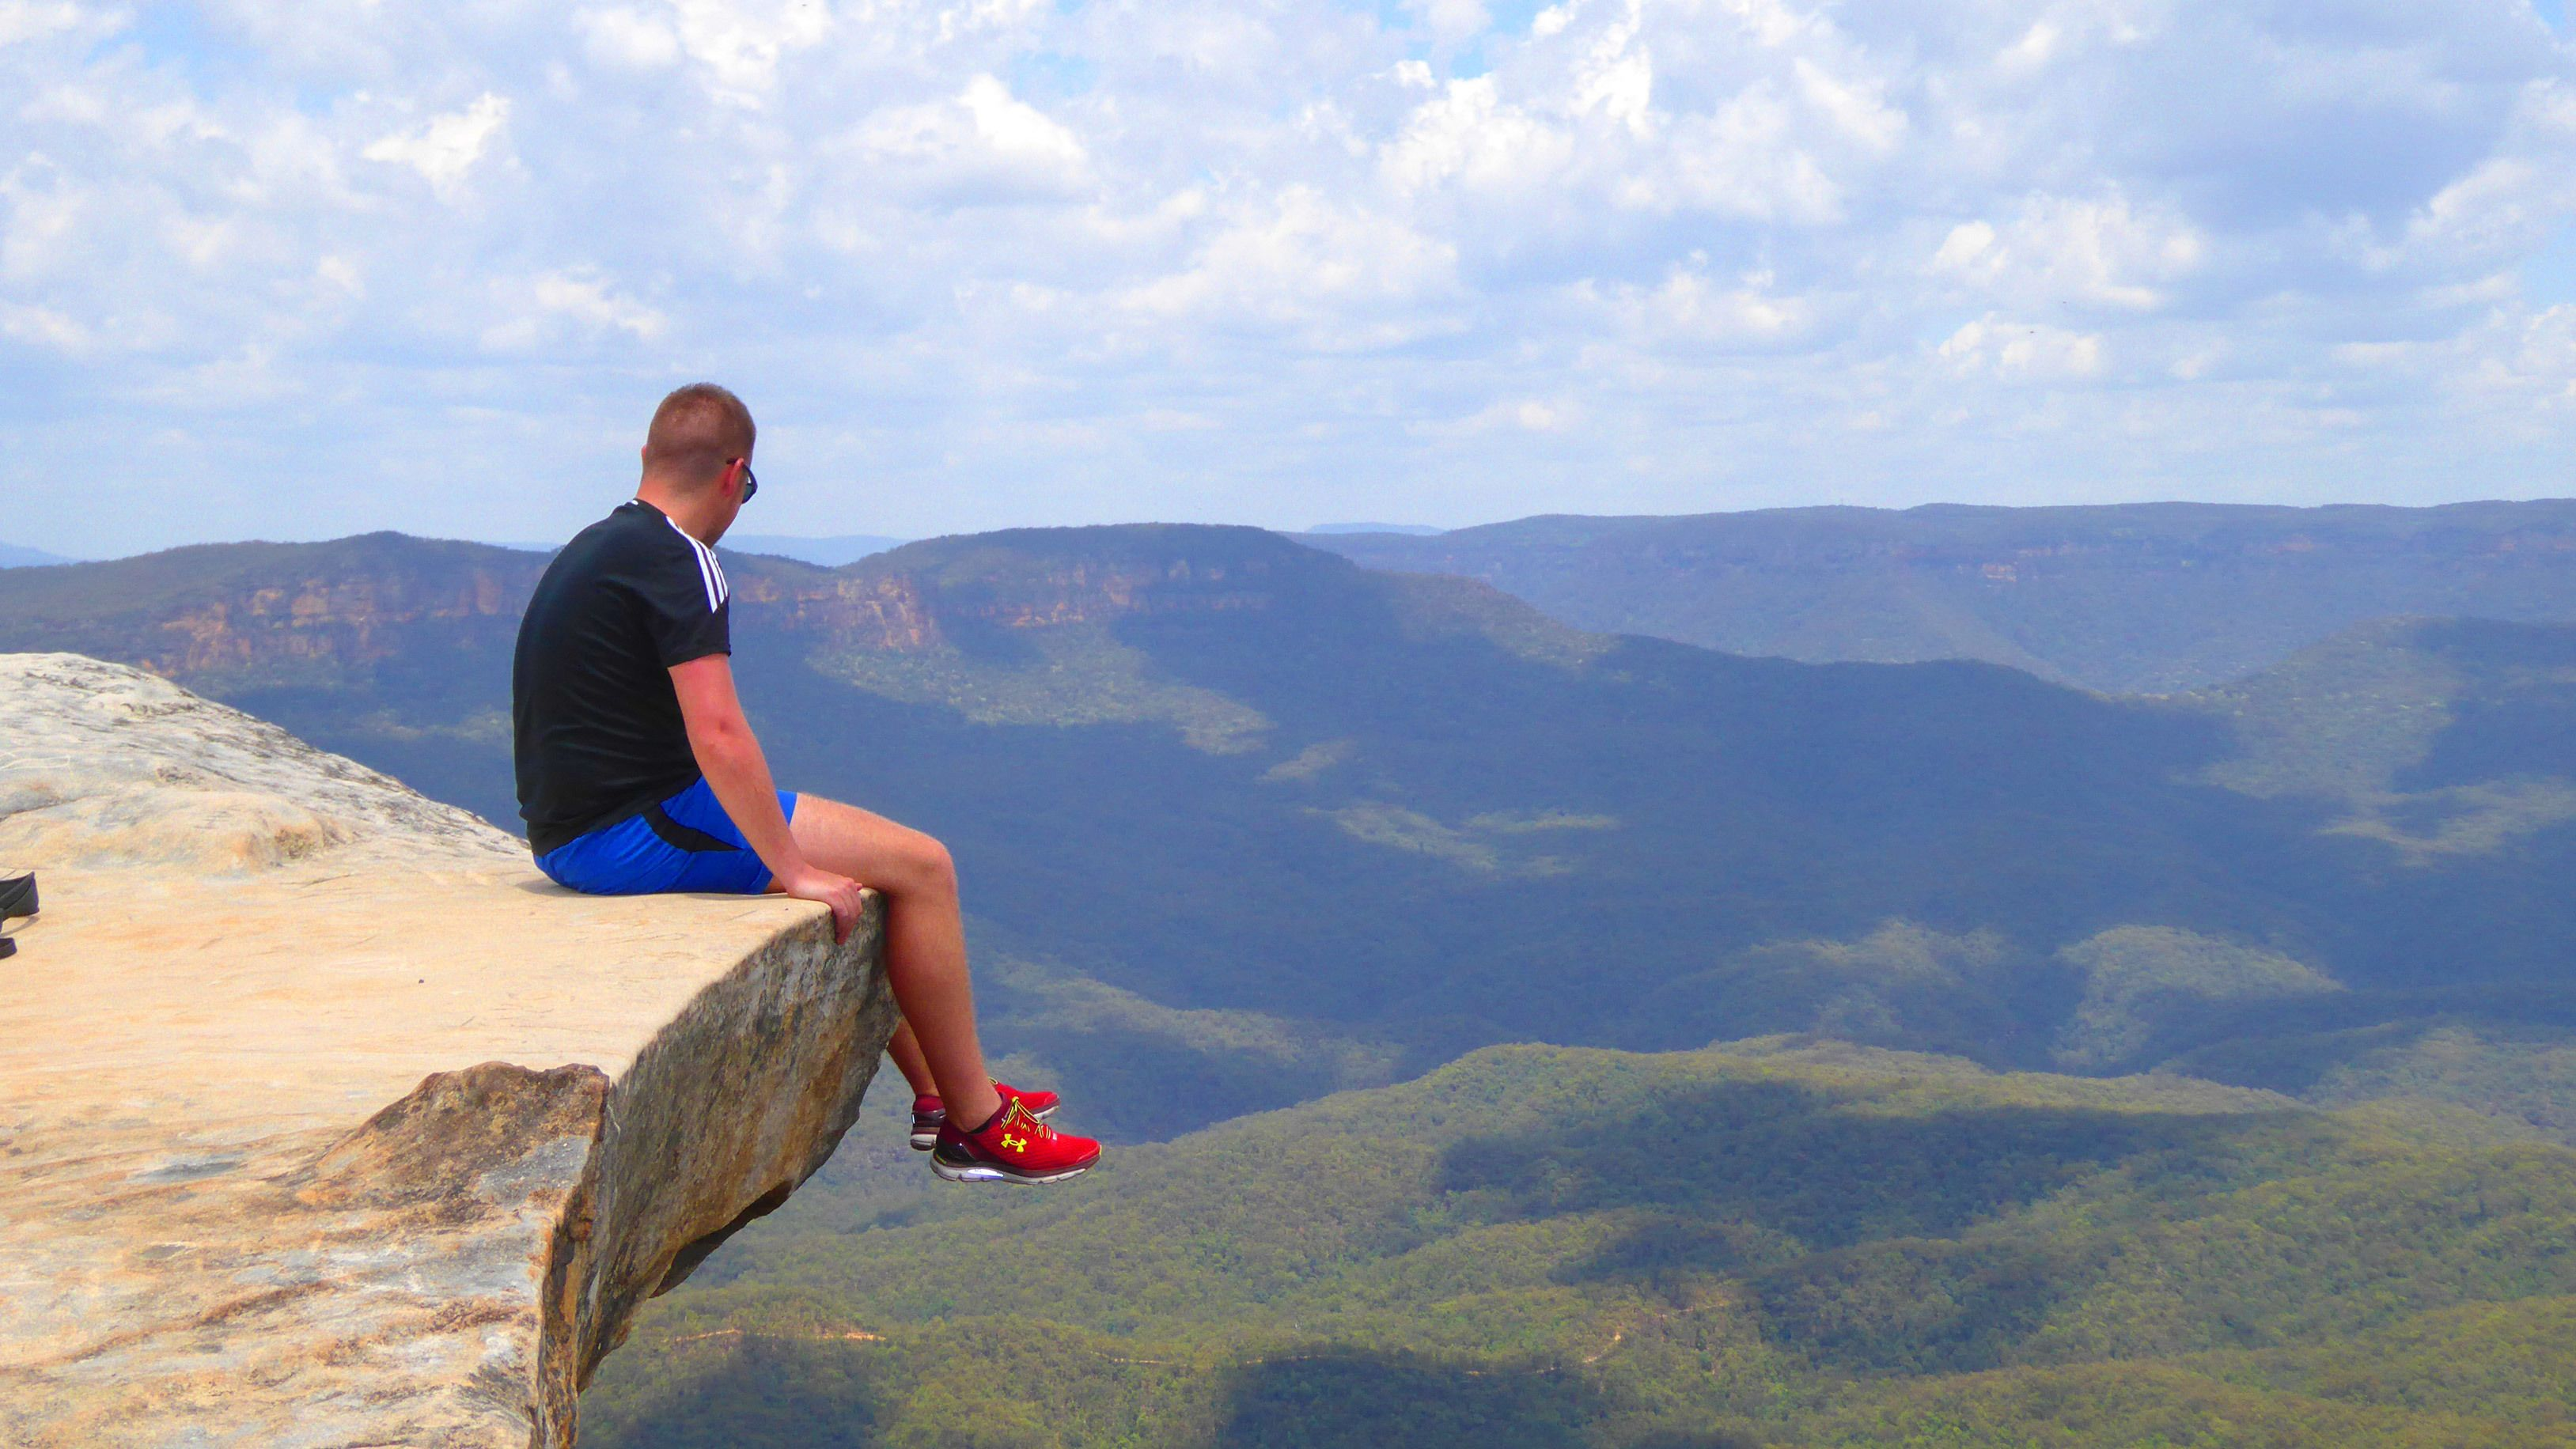 Man hanging feet over a cliff in Australia